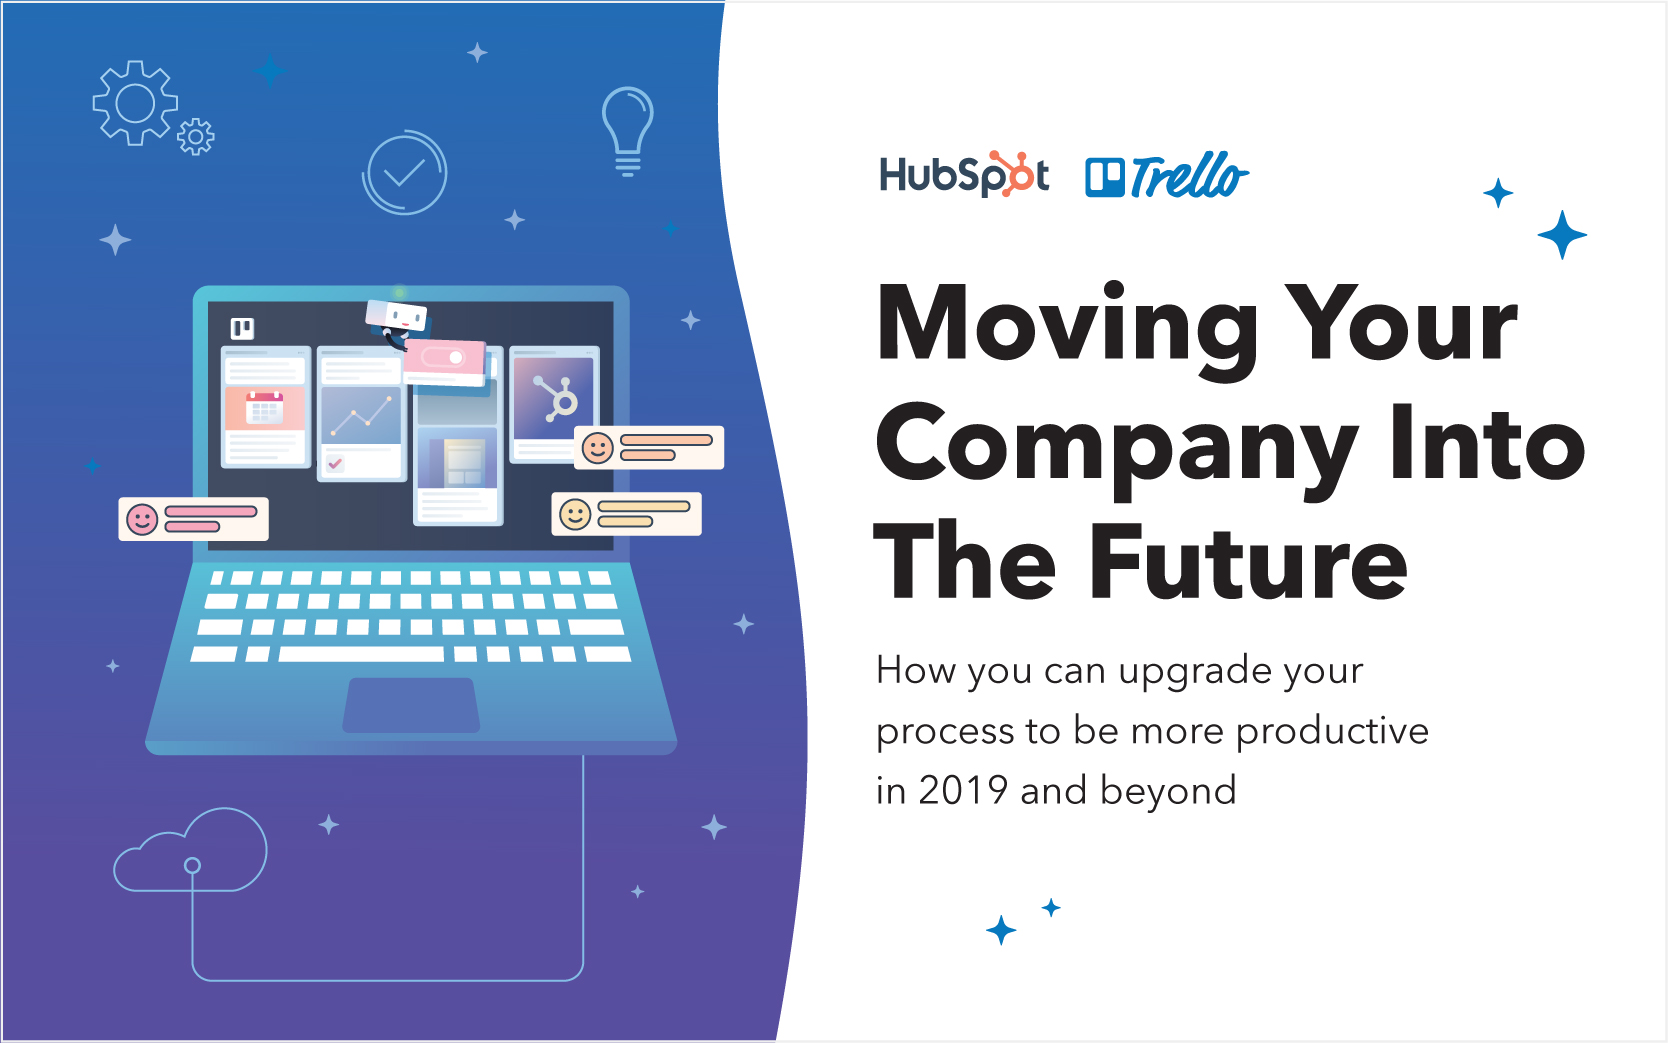 Moving your Company into The Future